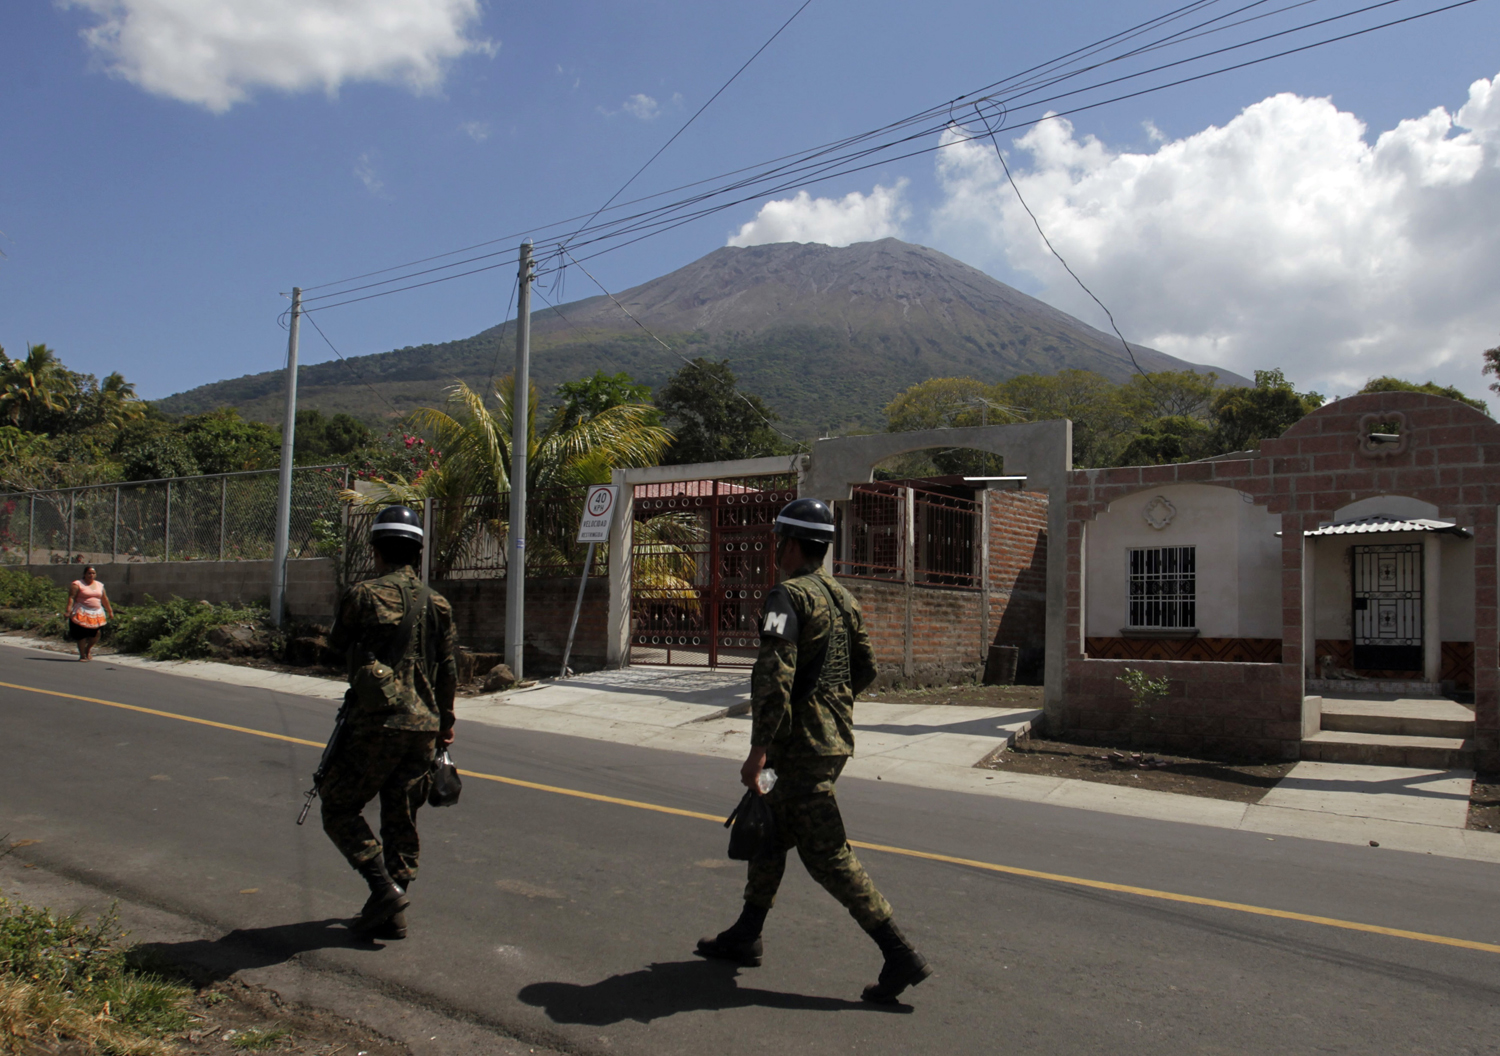 Salvadorean soldiers walk near the area of the Chaparrastique volcano in the municipality of Placitas outside San Salvador February 13, 2014.